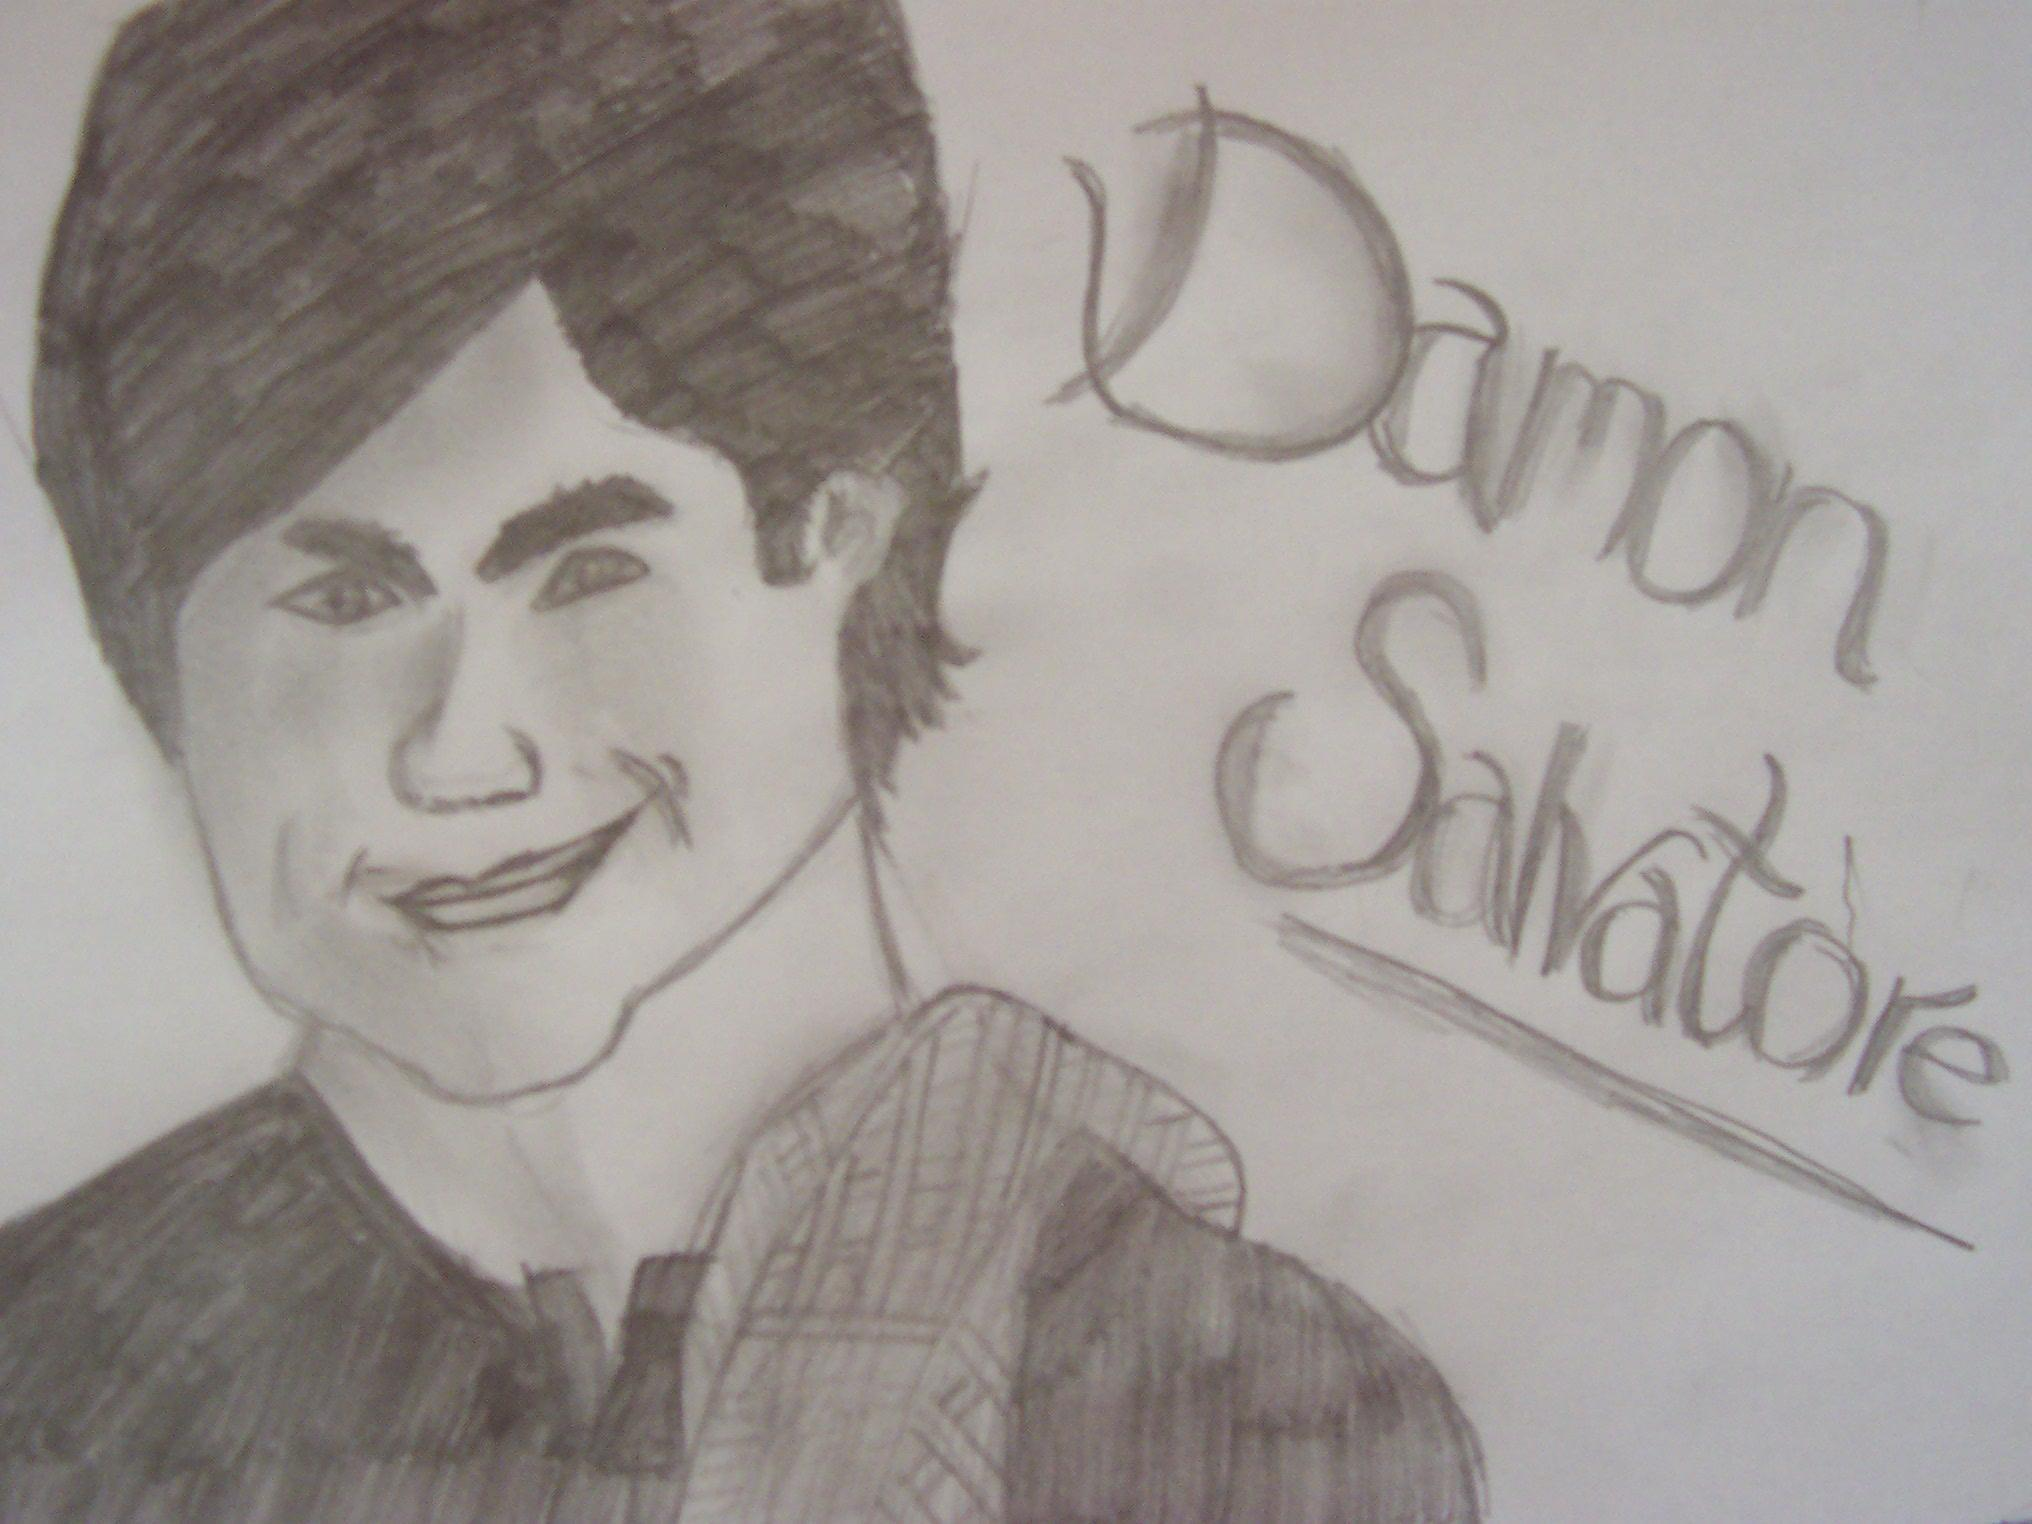 Please can you tell me if my picture of Damon Salvatore is actually good?